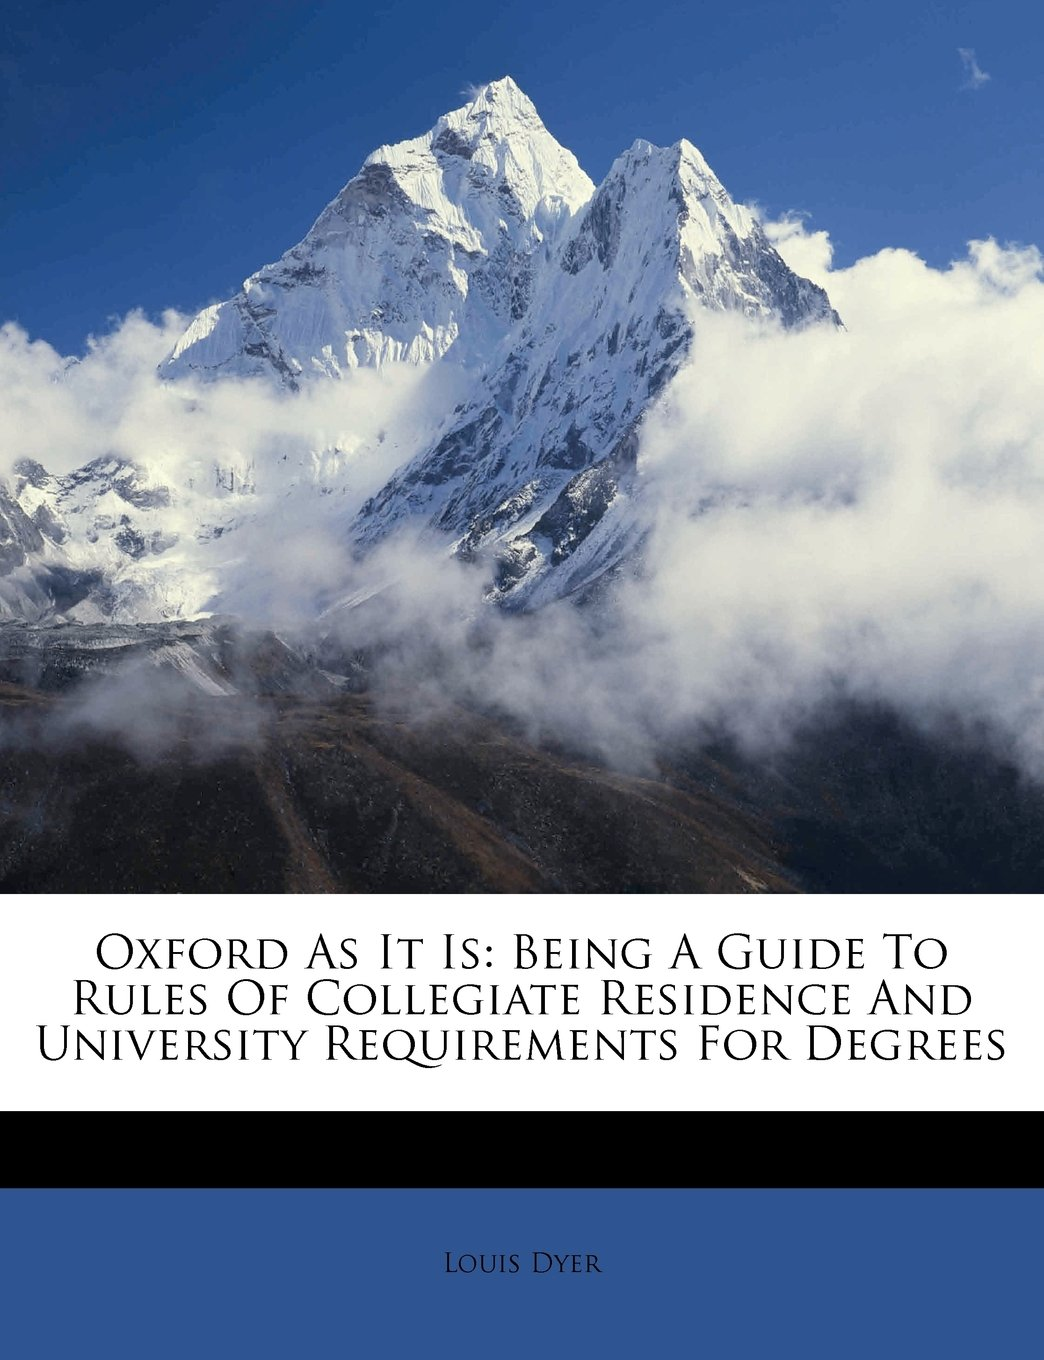 Download Oxford As It Is: Being A Guide To Rules Of Collegiate Residence And University Requirements For Degrees PDF